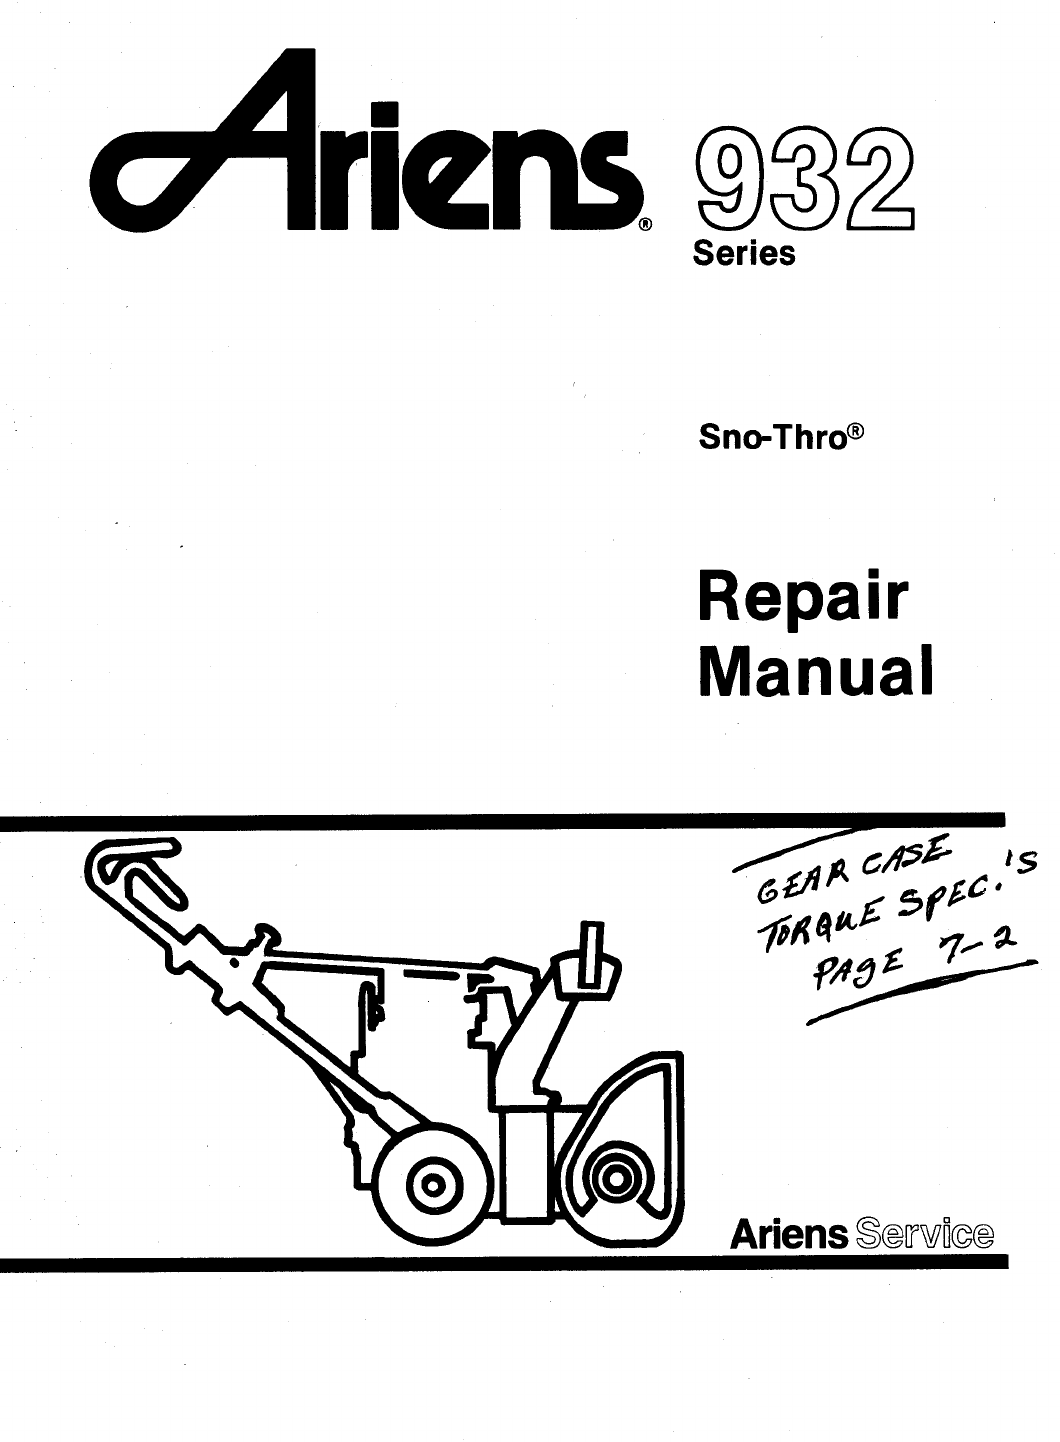 ariens snow blower 932 series user guide manualsonline com rh homeappliance manualsonline com ariens snowblower repair manual ariens snowblower owners manual pdf